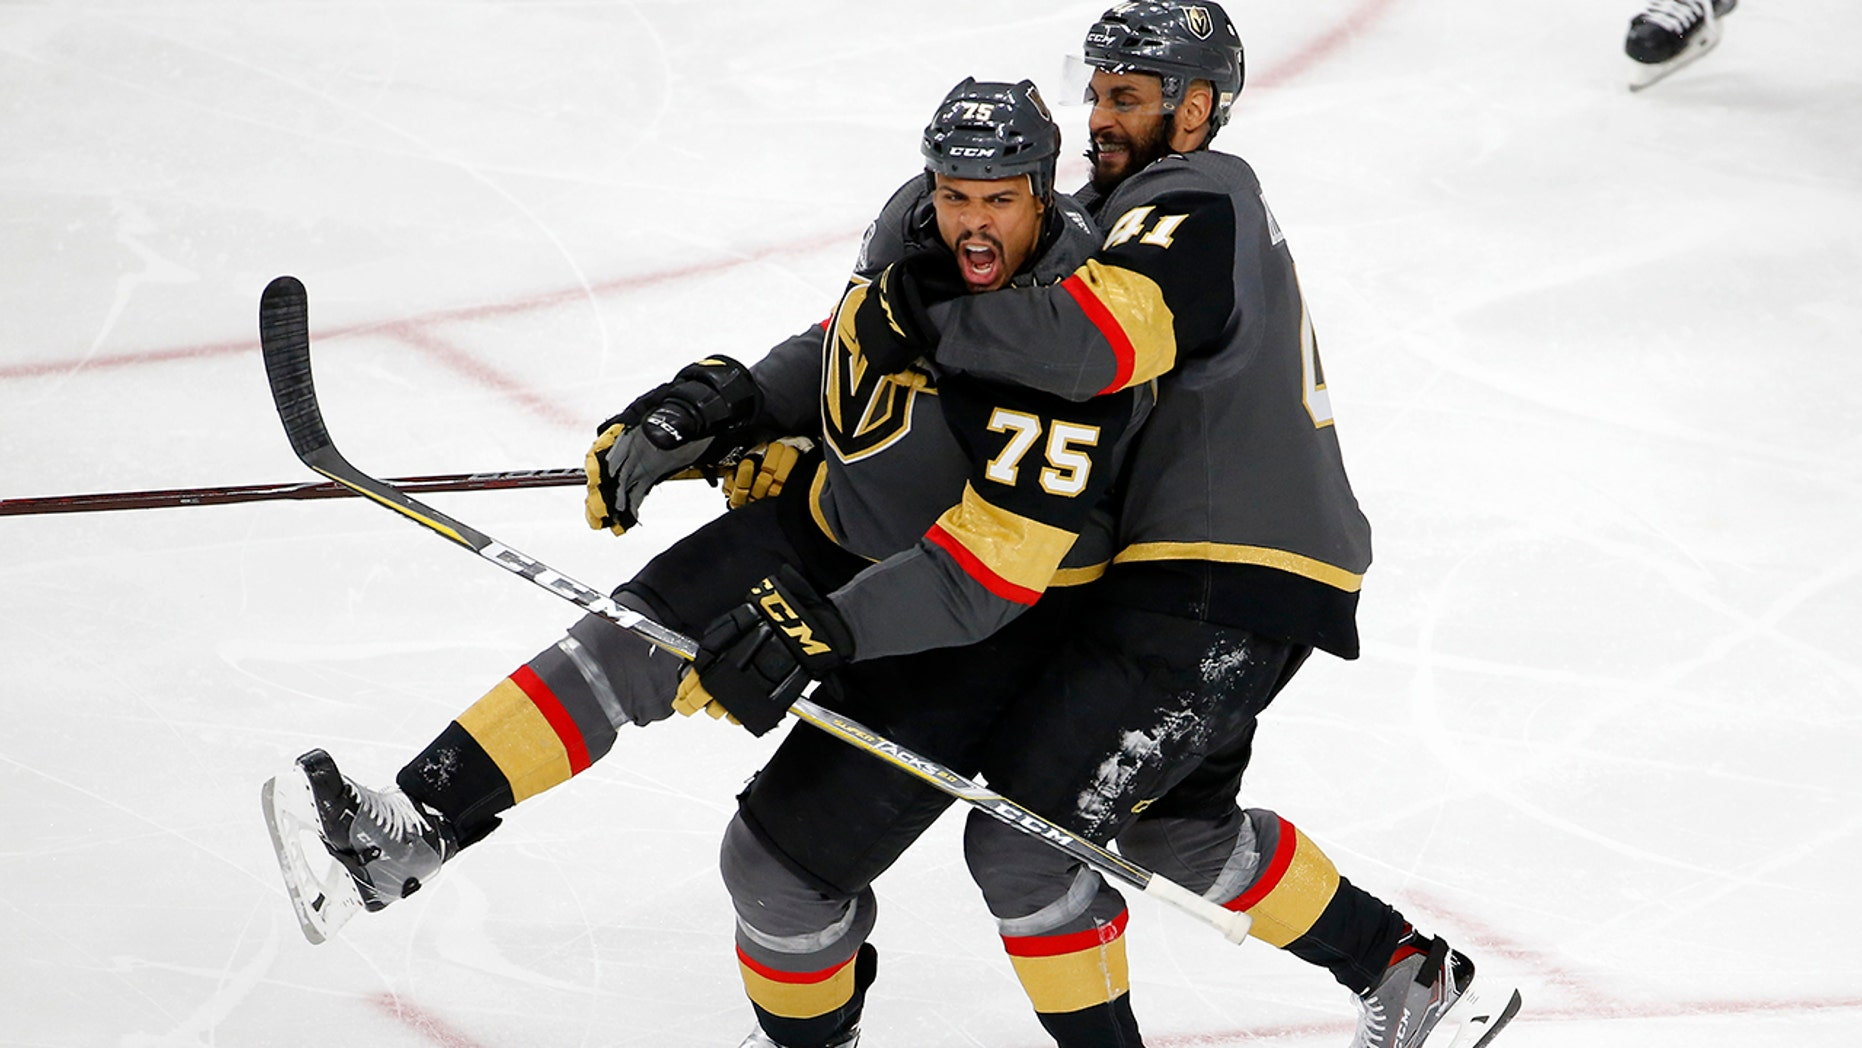 Vegas Golden Knights right wing Ryan Reaves, left, celebrates his goal with left wing Pierre-Edouard Bellemare, of France, during the third period in Game 1 of the NHL hockey Stanley Cup Finals against the Washington Capitals Monday, May 28, 2018, in Las Vegas.